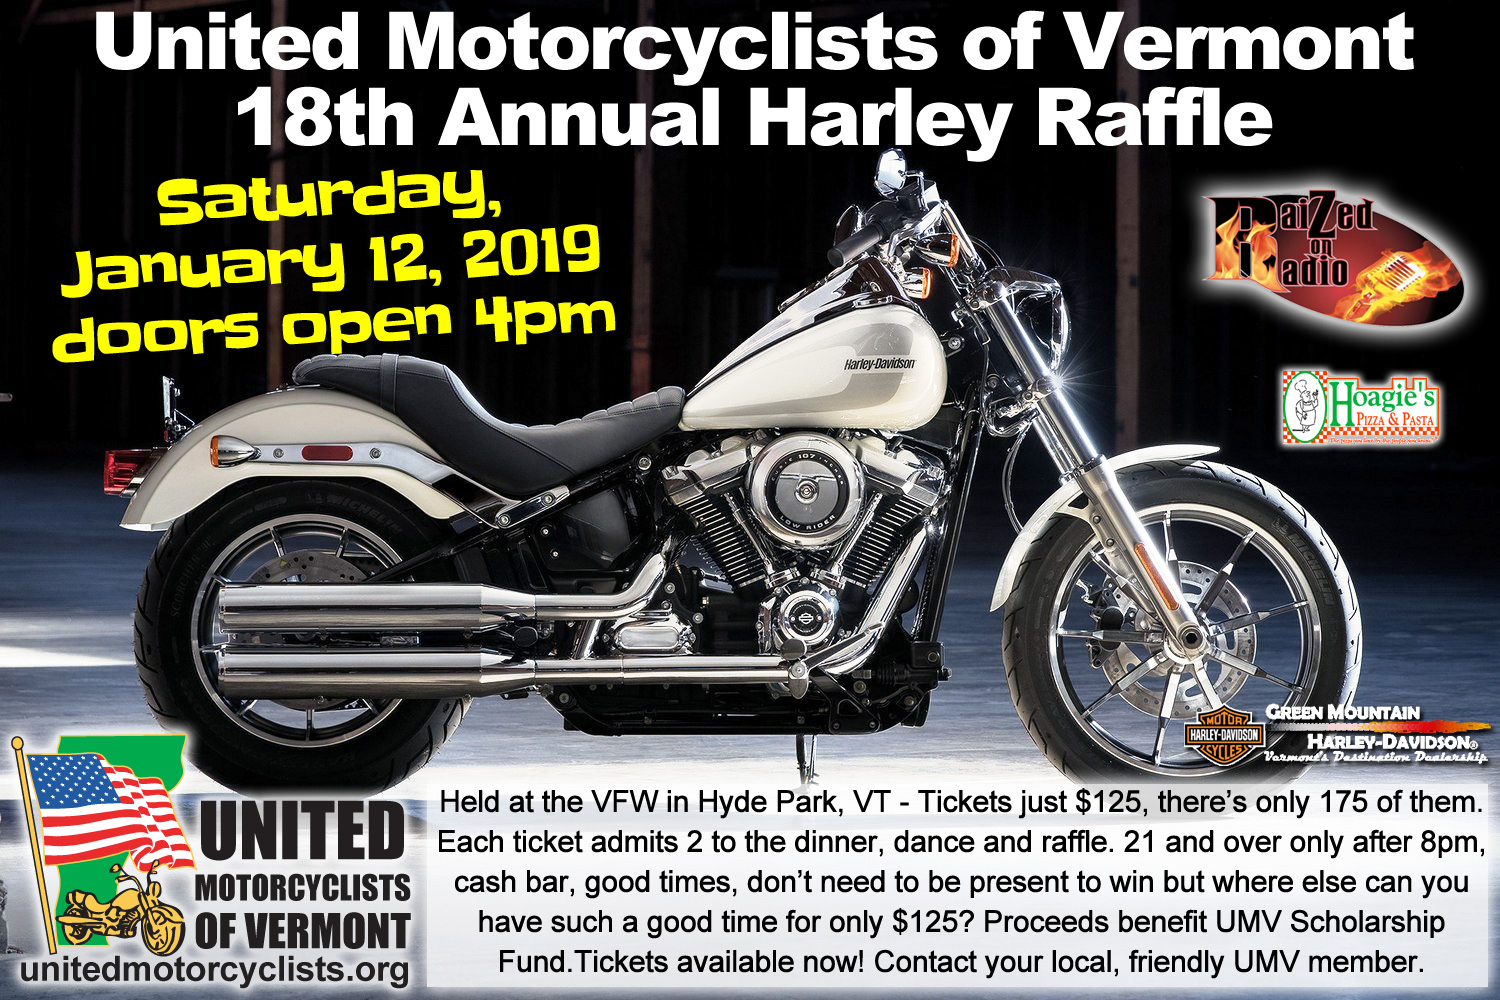 18th Annual UMV Harley Raffle 2019 | United Motorcyclists of Vermont